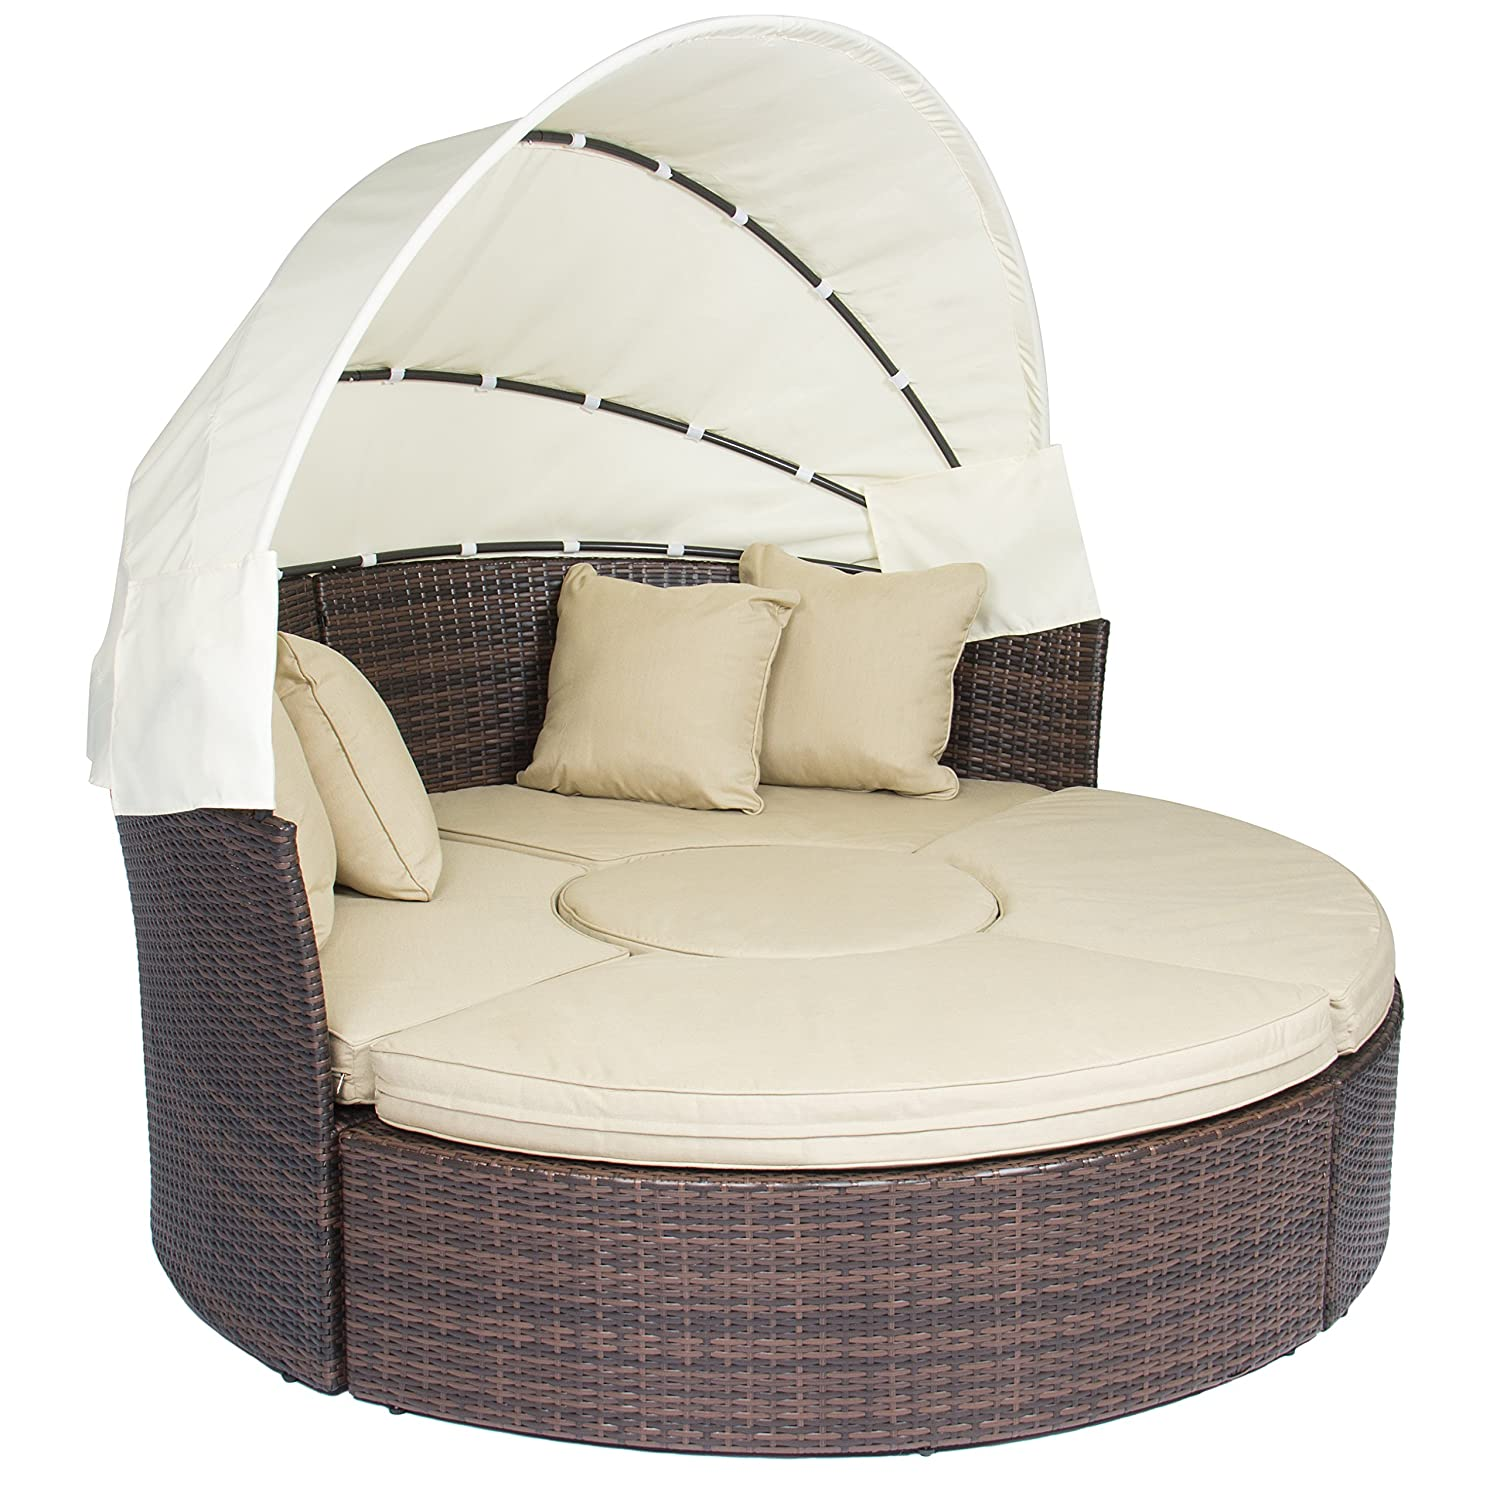 Good Amazon.com : Outdoor Patio Sofa Furniture Round Retractable Canopy Daybed  Brown Wicker Rattan : Patio, Lawn U0026 Garden